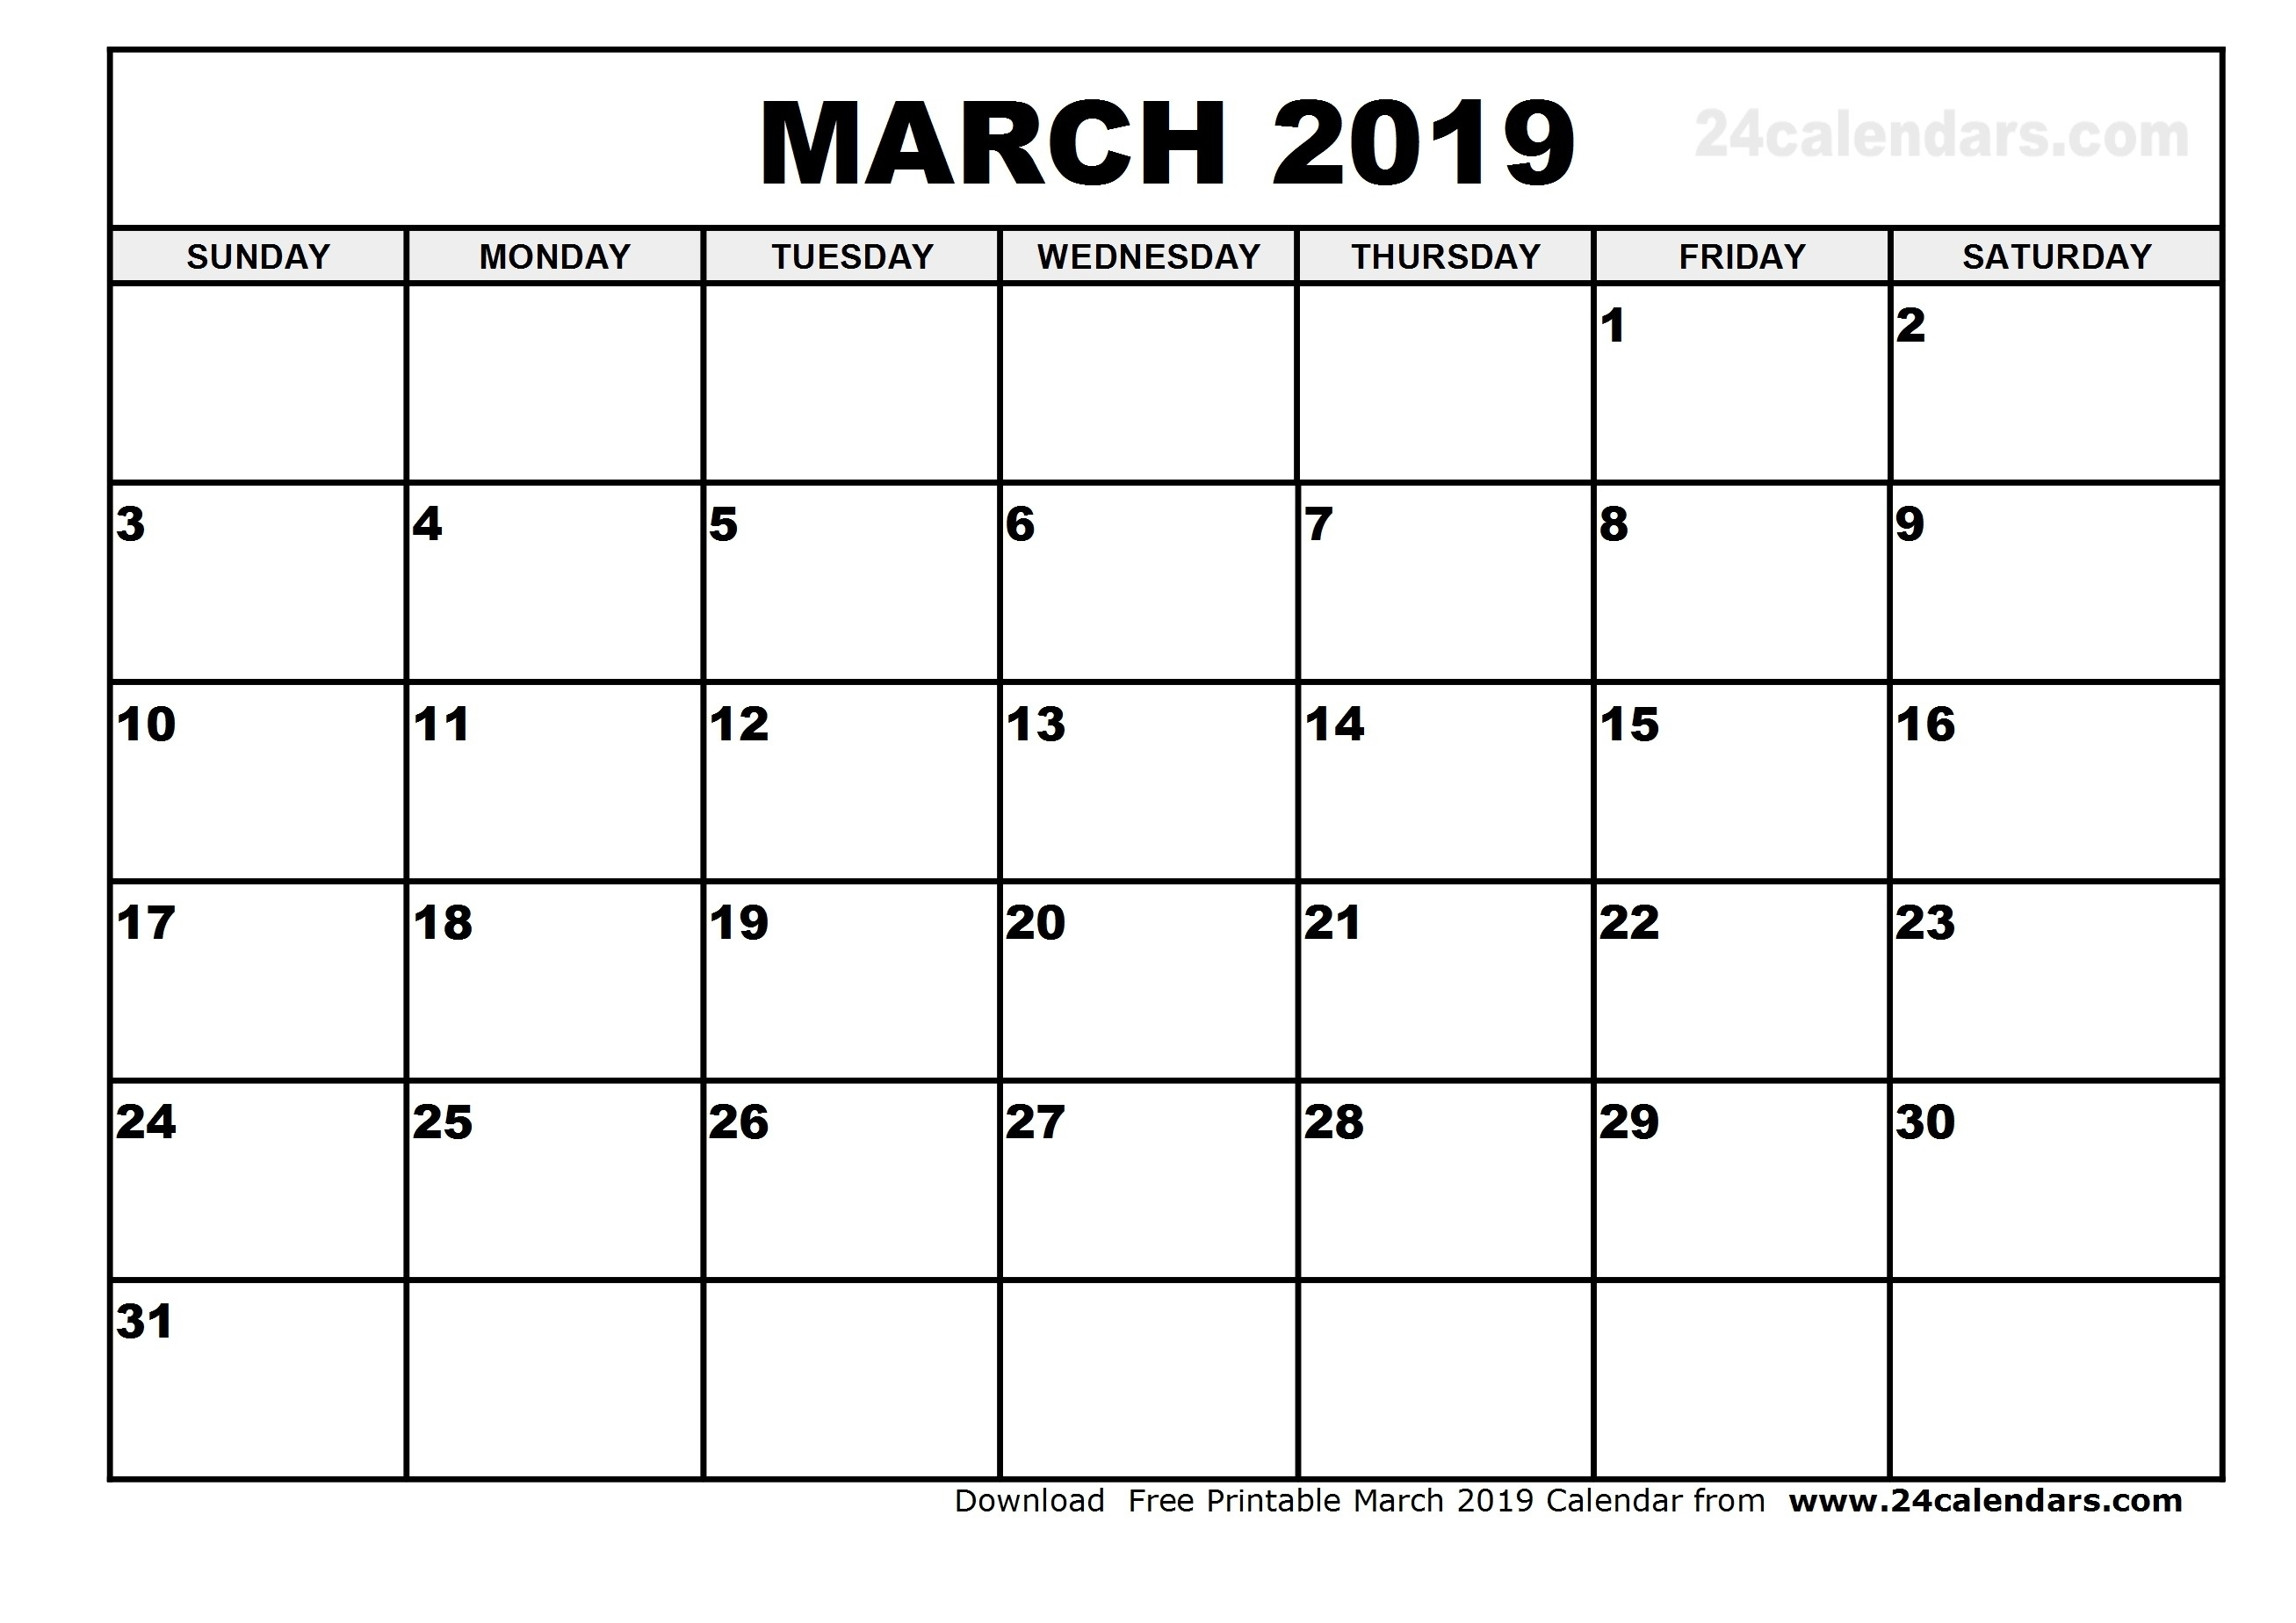 Free 6 Month Calendar January To June 2019 Template | Printable regarding Blank Calendar Template Monday To Friday Only